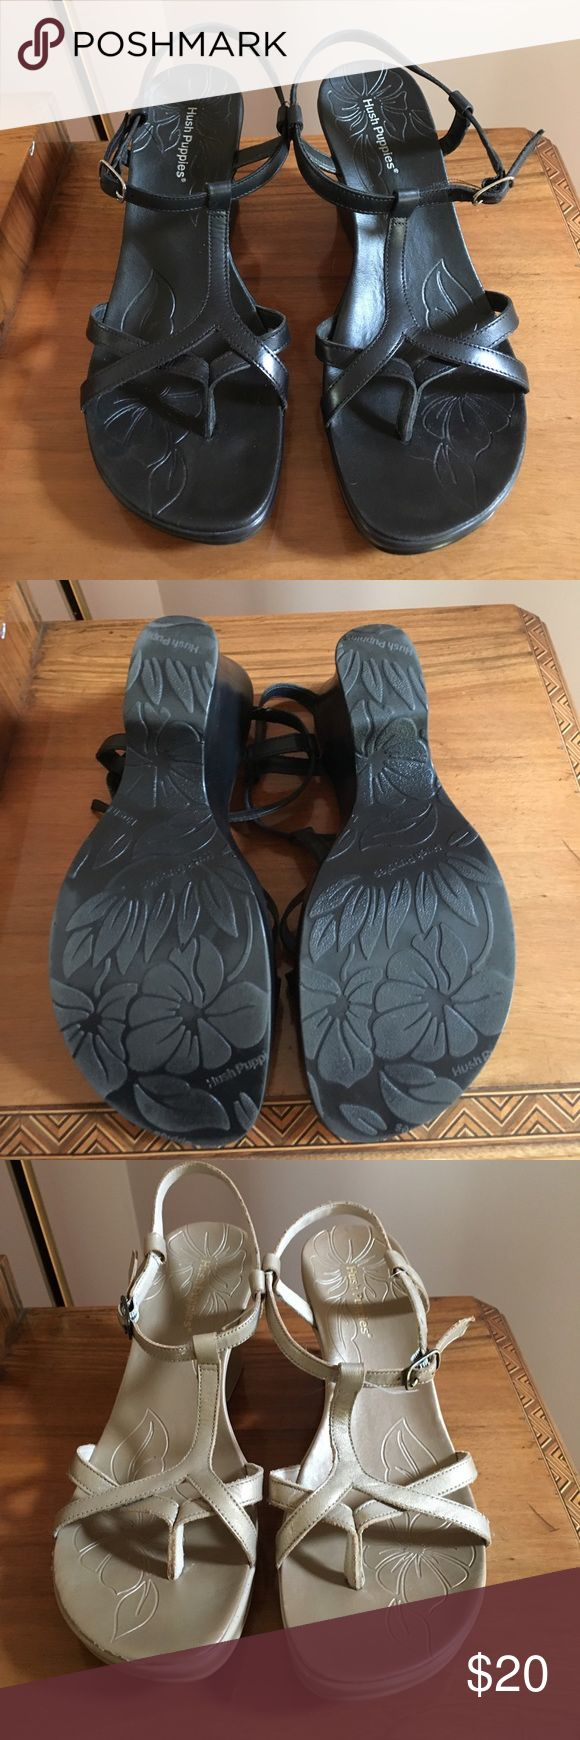 Hush Puppies Sandals 2 colors available Hush Puppies Carnival Sandals. One pair black, the other gold. Leather upper made in Brazil (they have great leather). Size 8 or Euro 39 is on box. In great shape and comfortable. Hush Puppies Shoes Sandals